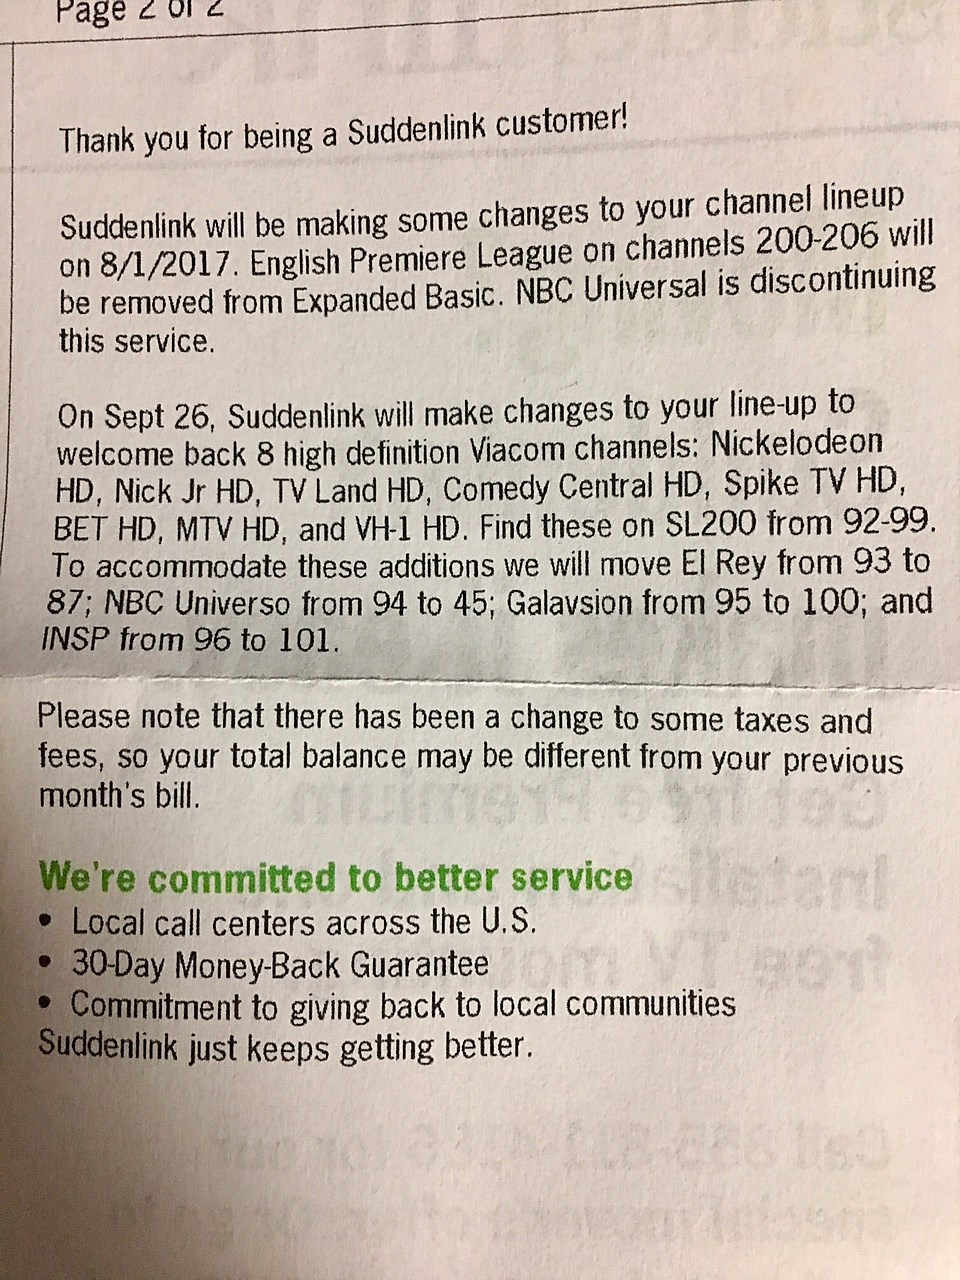 bet channel on suddenlink